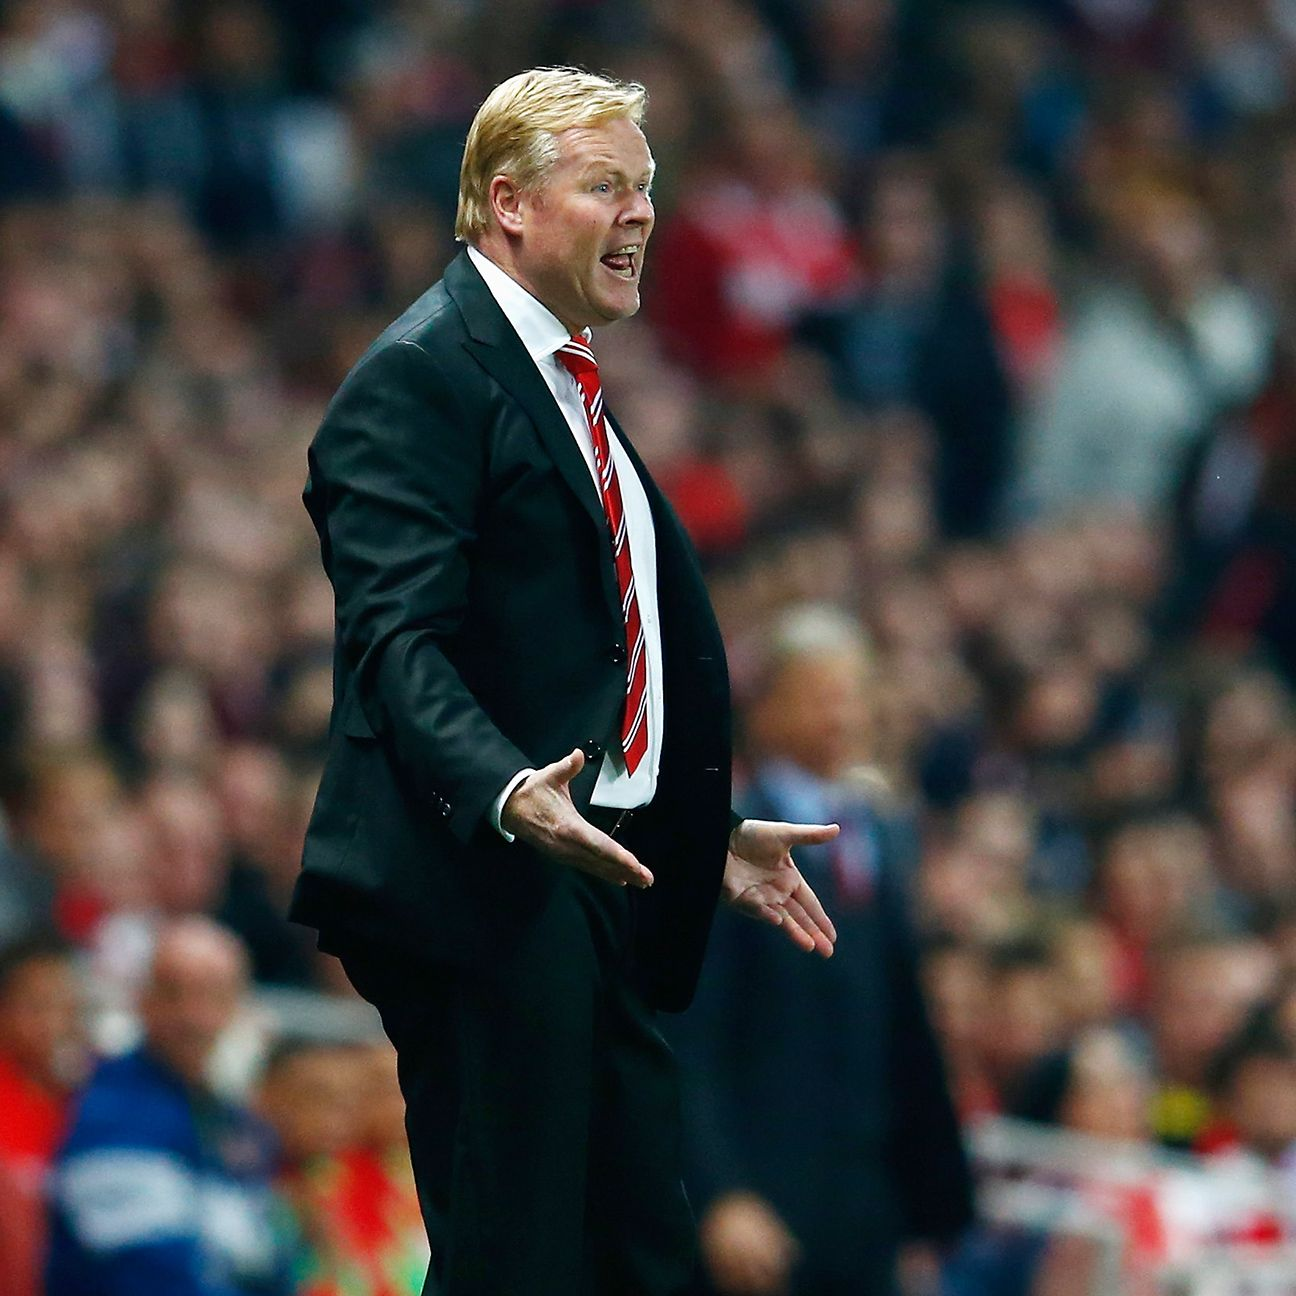 Ronald Koeman's Southampton can claim a sixth straight win should they top QPR.